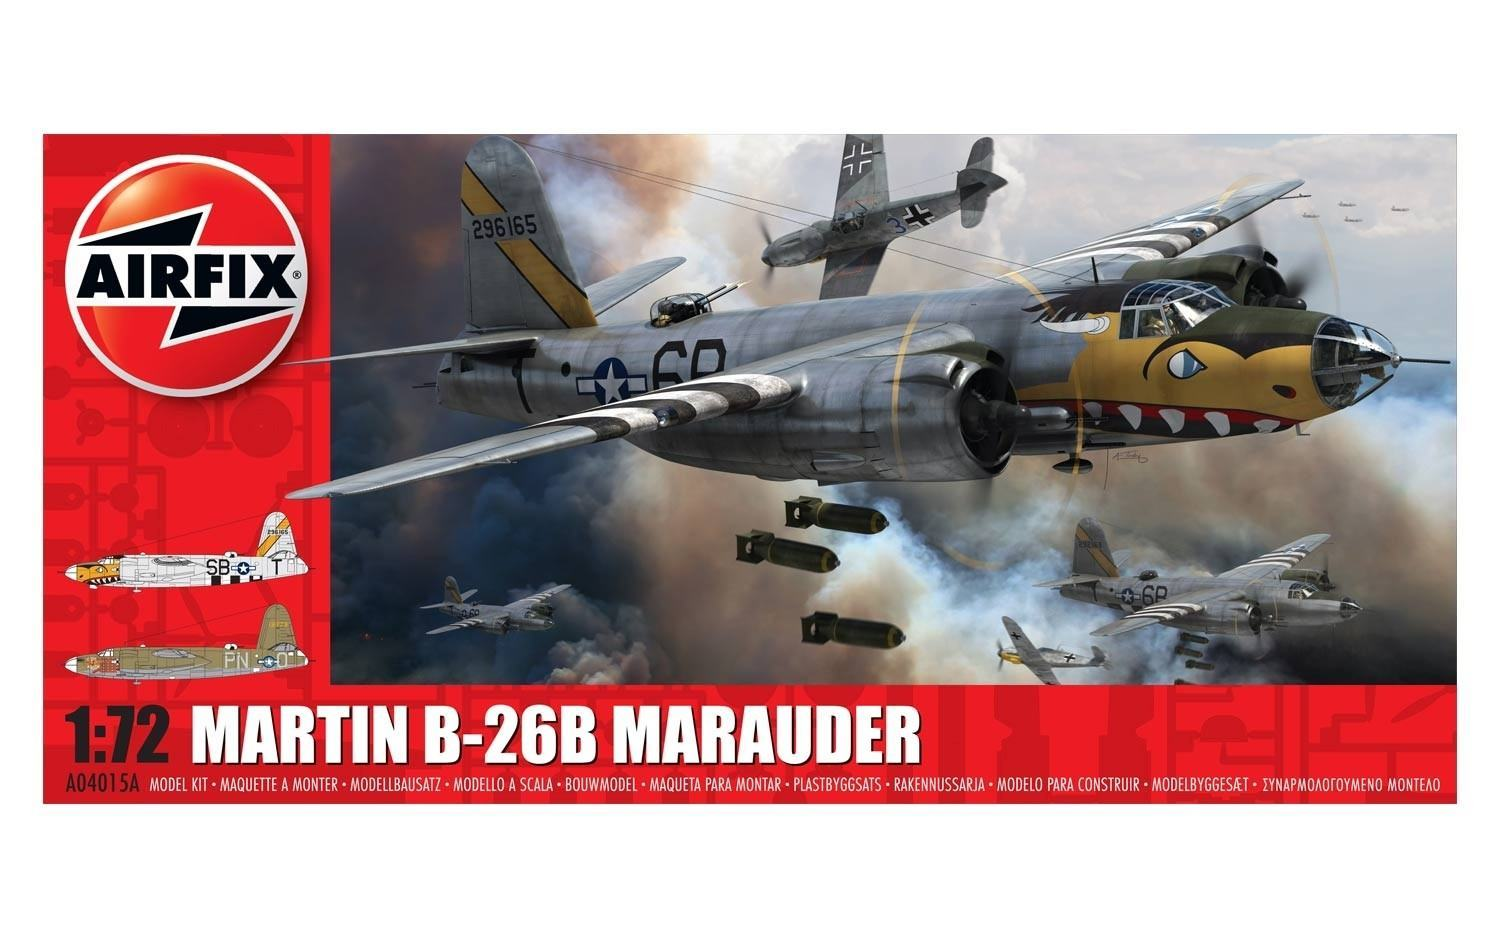 Airfix 1:72 Martin B-26B Marauder Scale Model Kit image